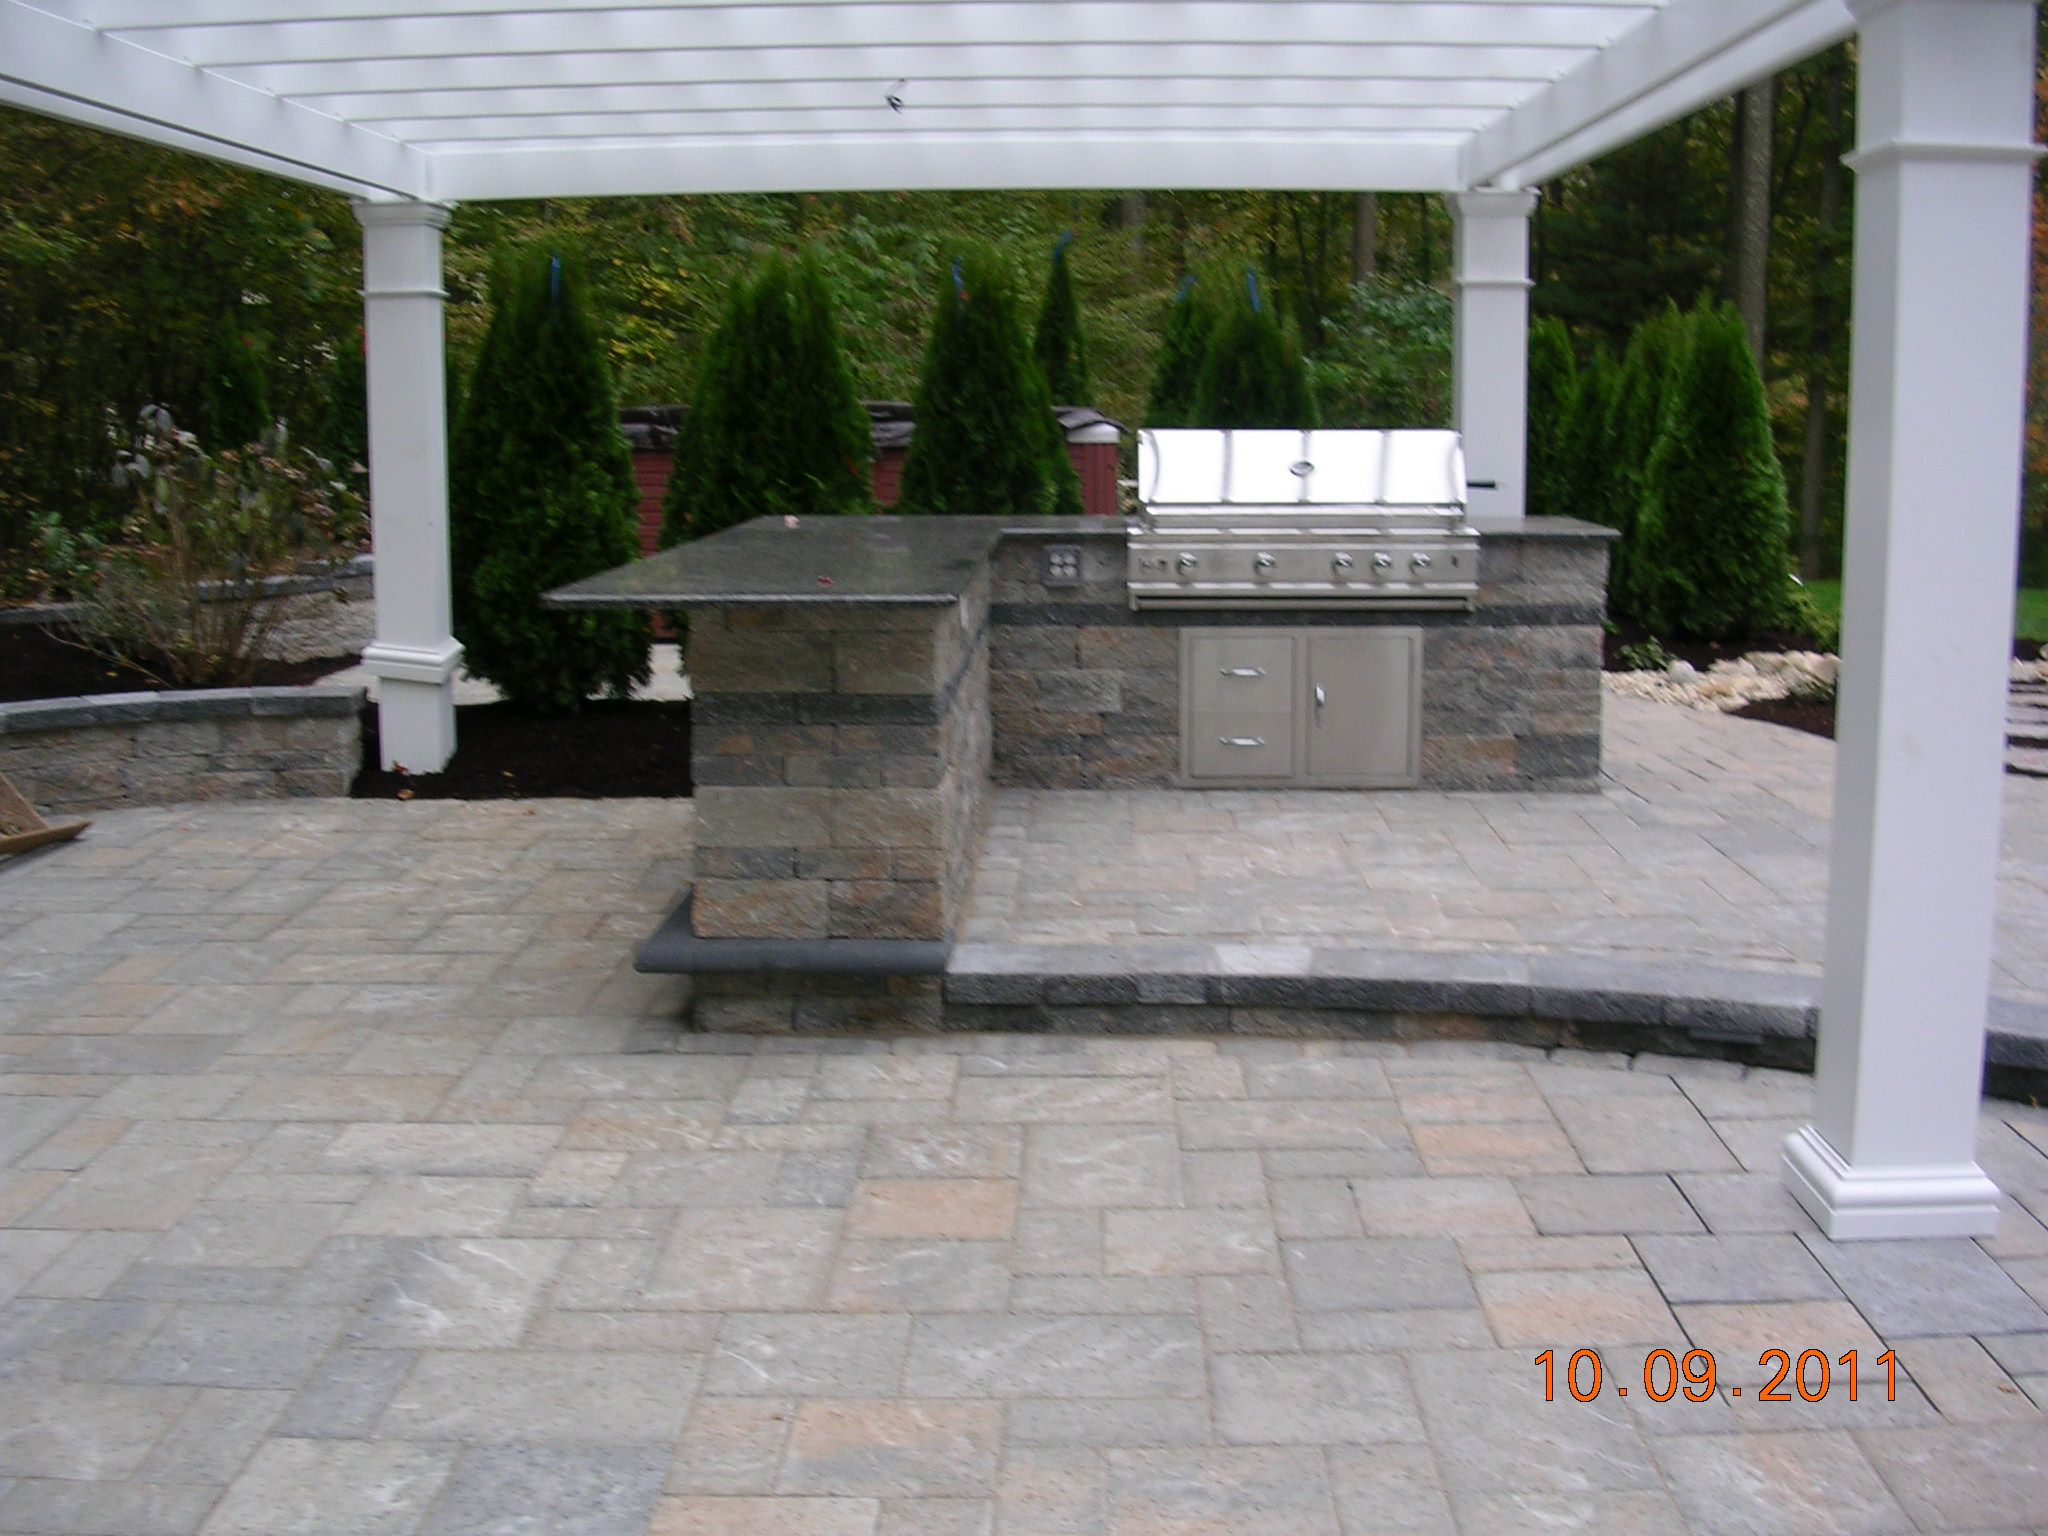 Outdoor Kitchen And Bar With Stainless Steel Grill And Pergola Set On A Paver Patio By Bahler Brothers In Hebron Outdoor Kitchen Outdoor Kitchen Island Patio